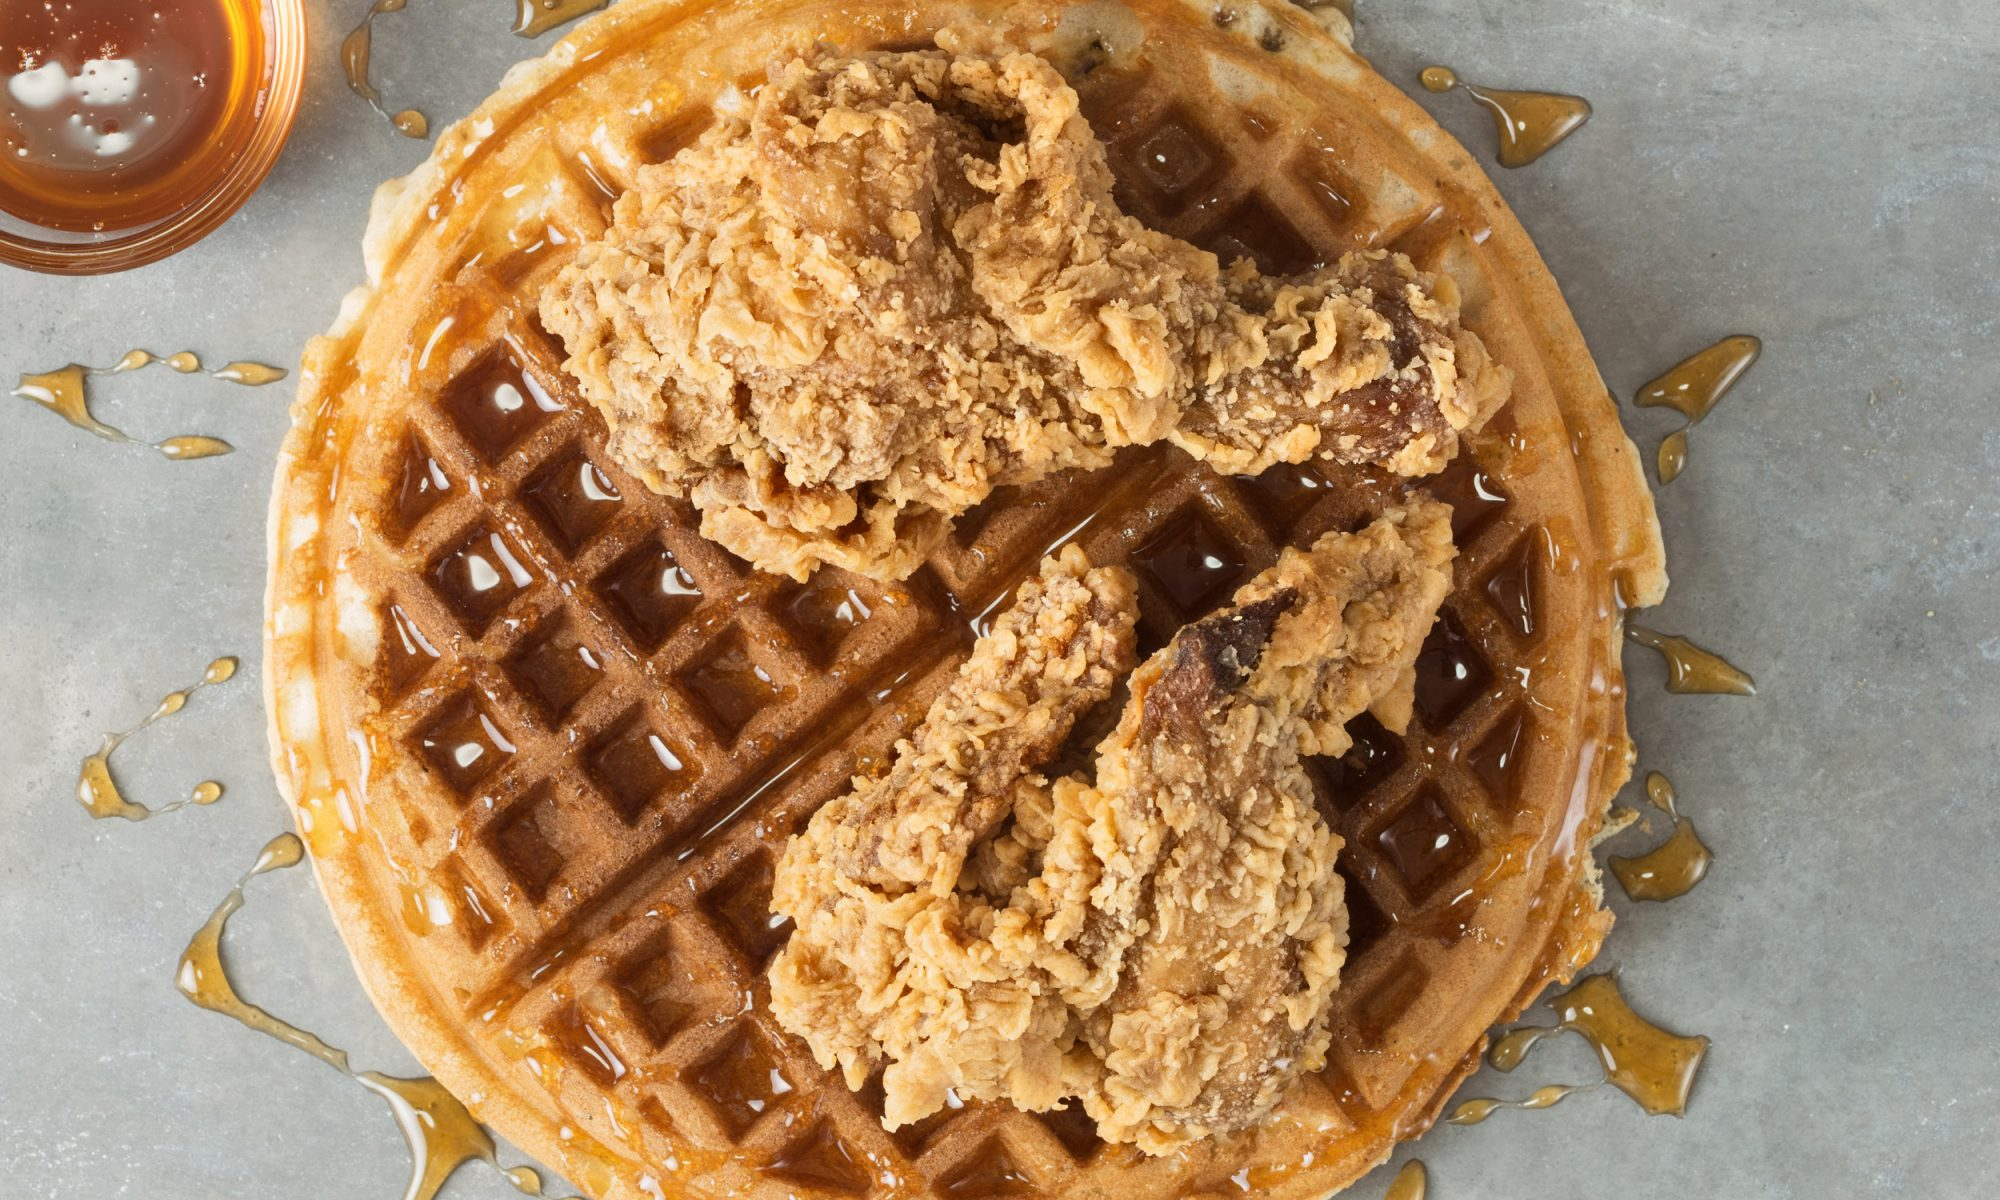 EC: Chicken and Waffles Was Invented in the South, Despite What You Have Heard